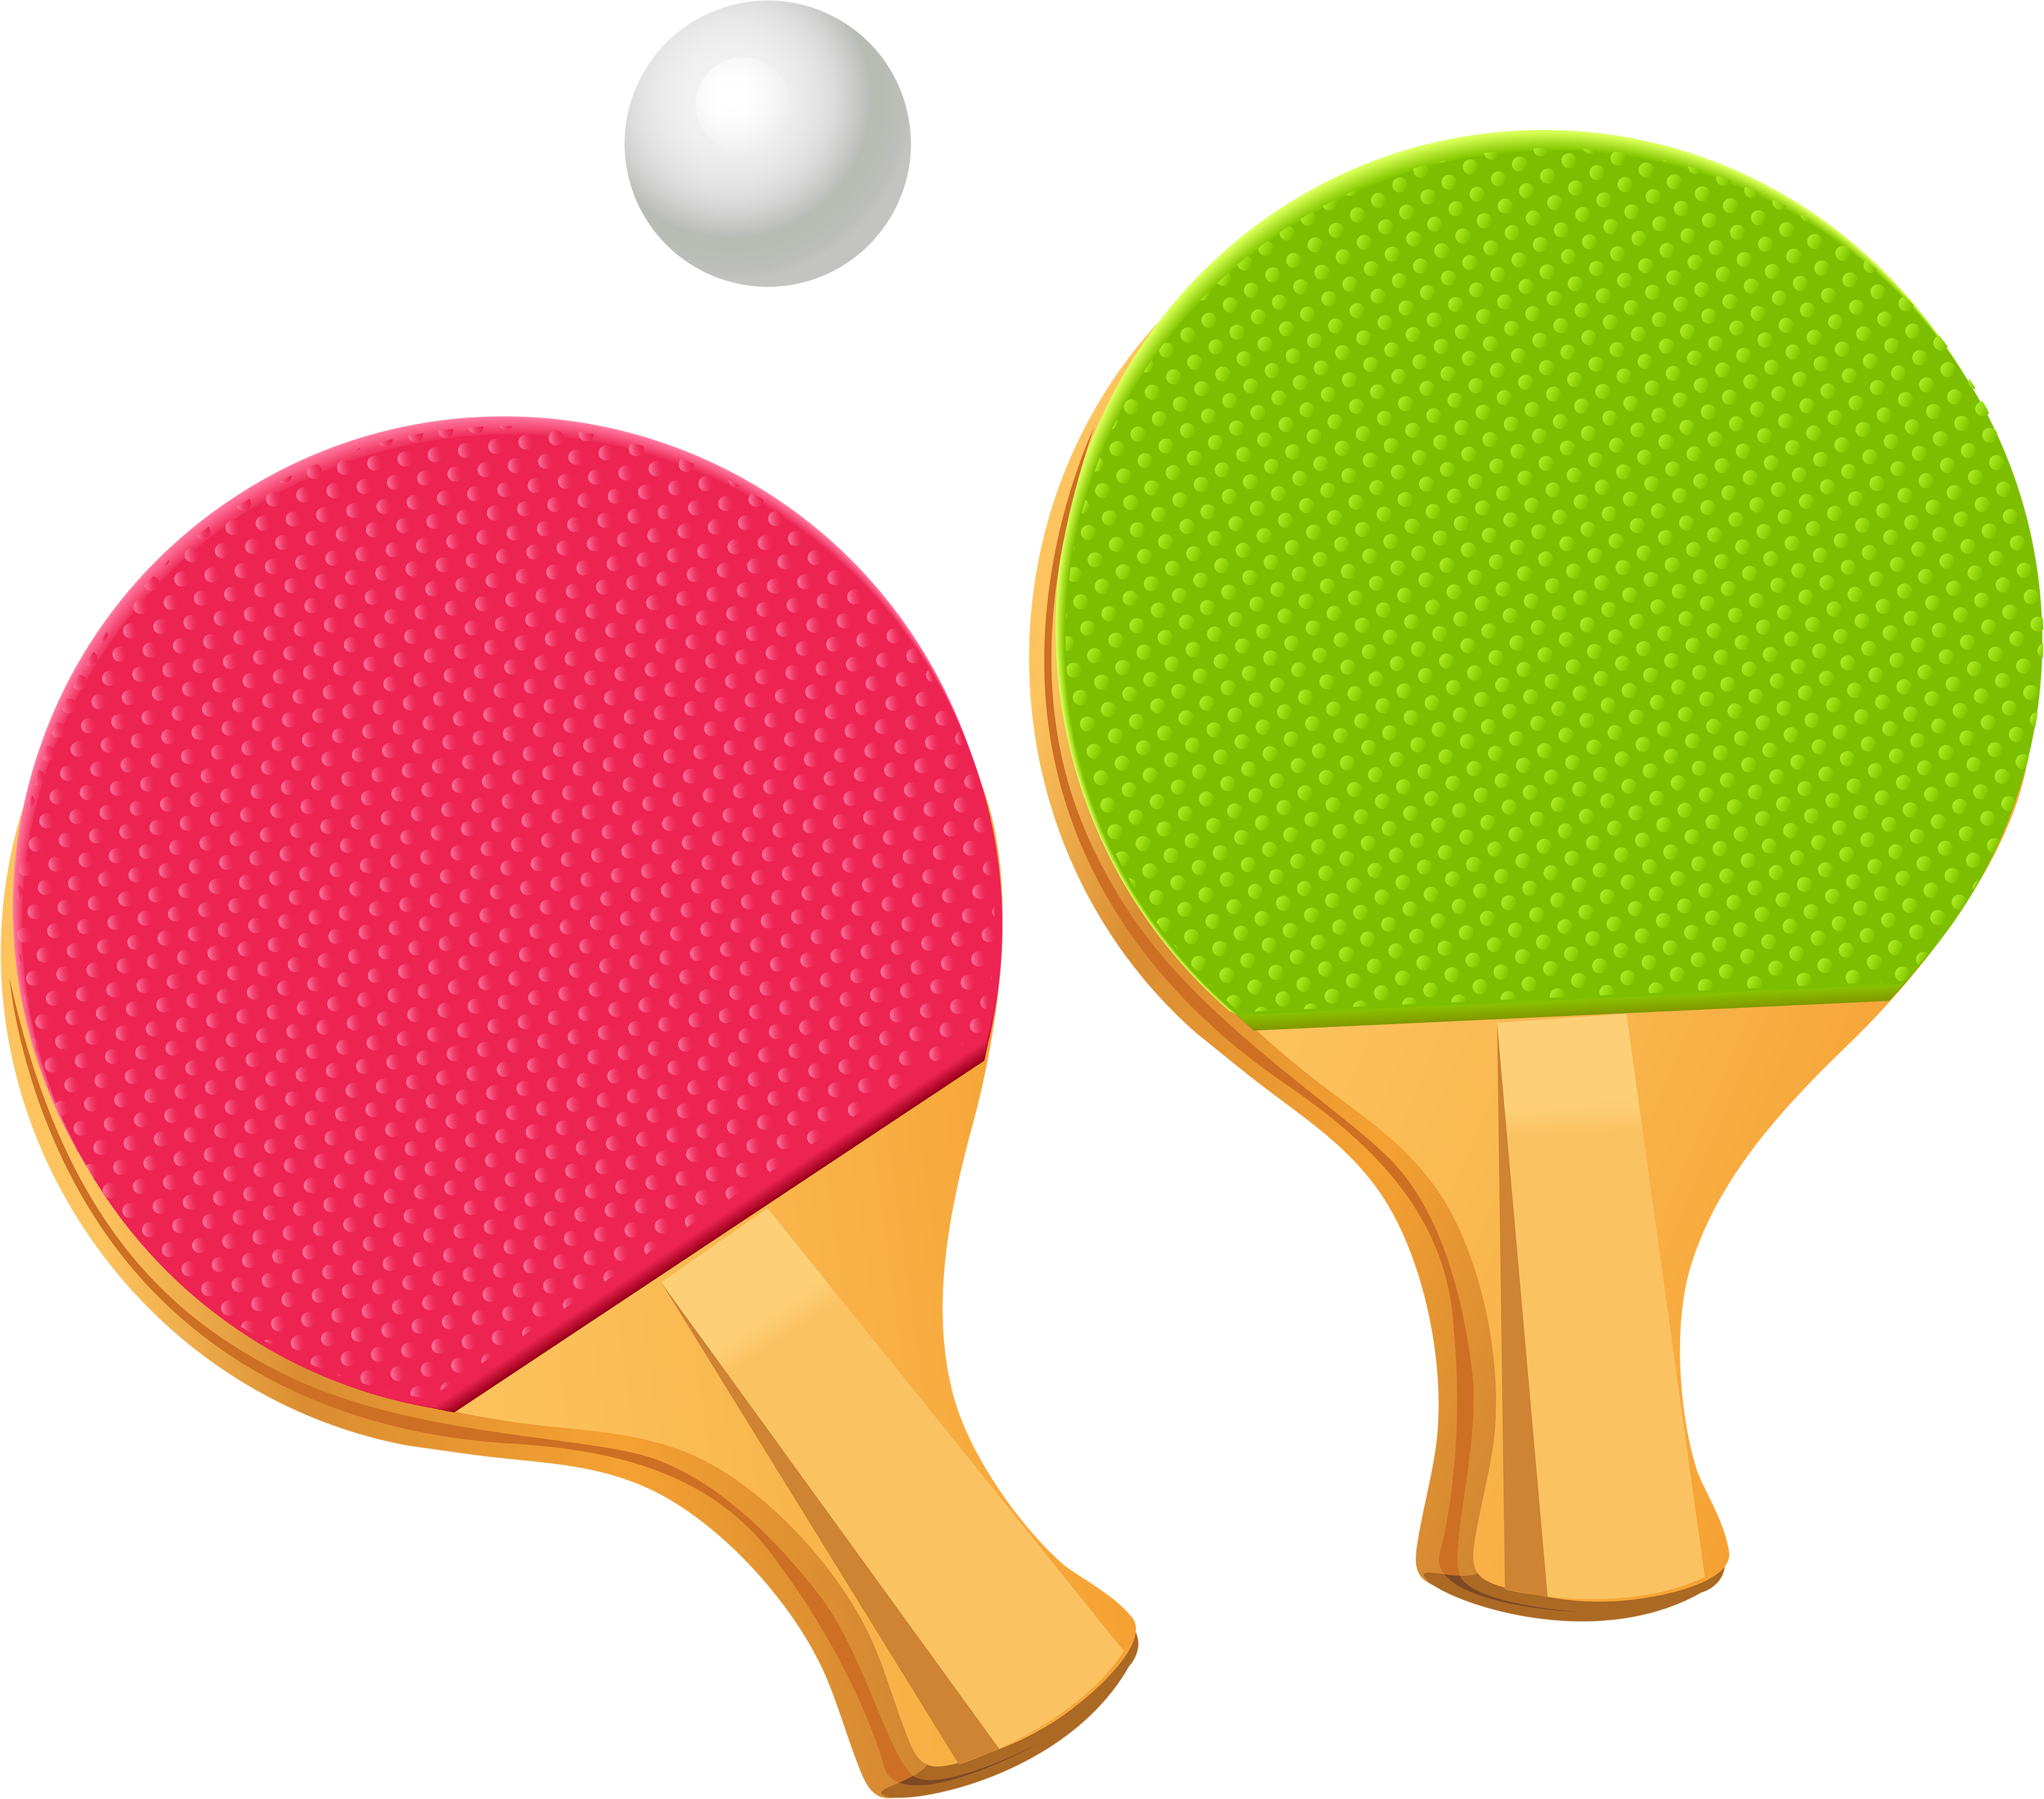 clipart transparent download Ping pong png image. Table tennis clipart.